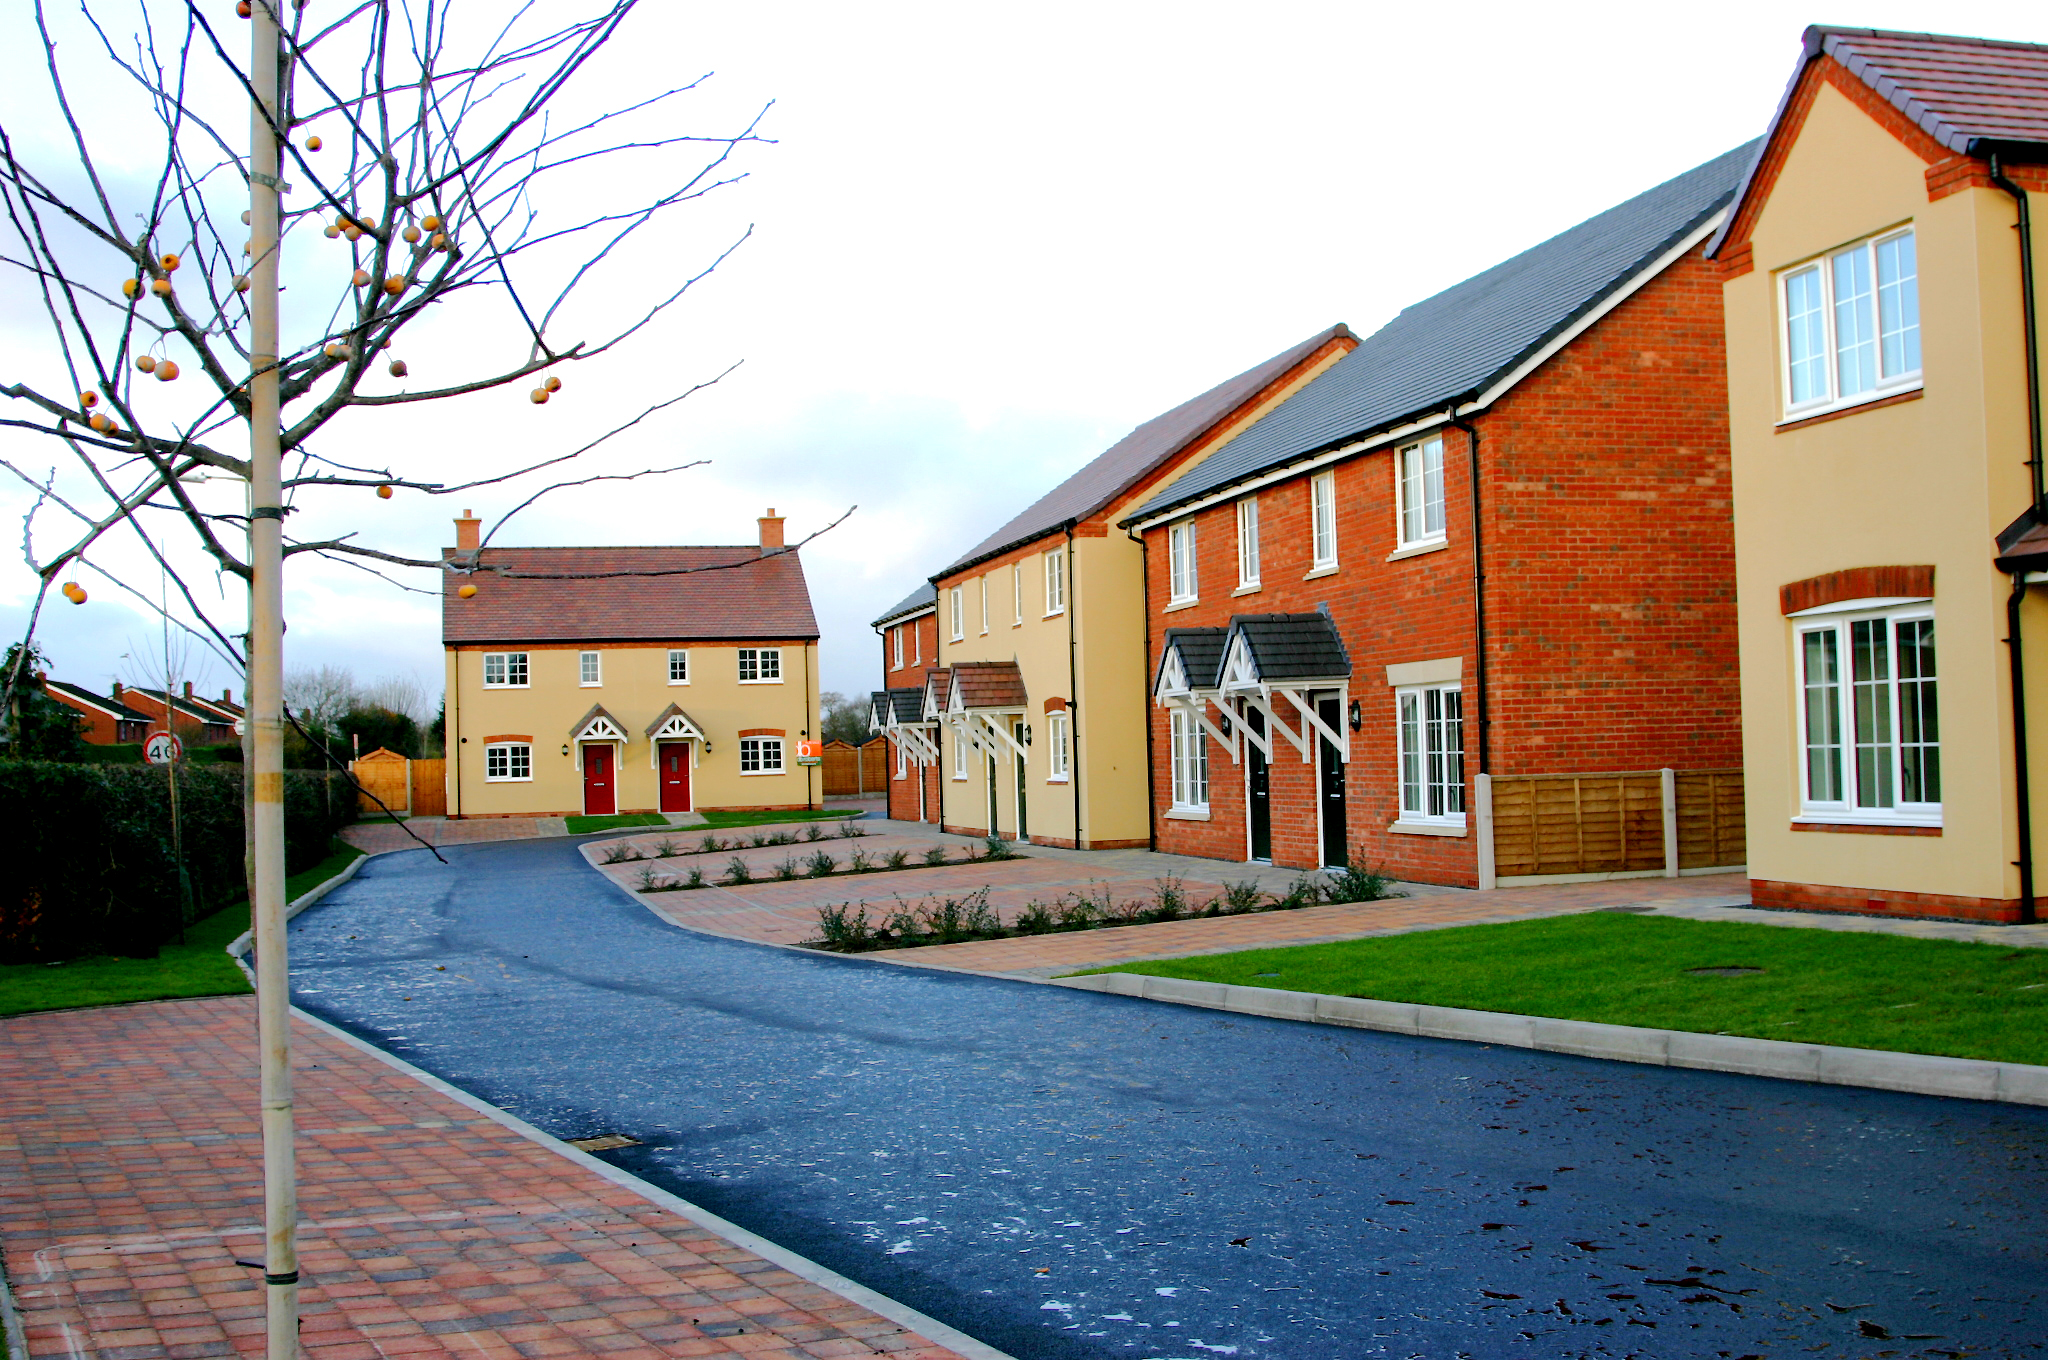 New build affordable housing by MELT Property at Baschurch, Shropshire